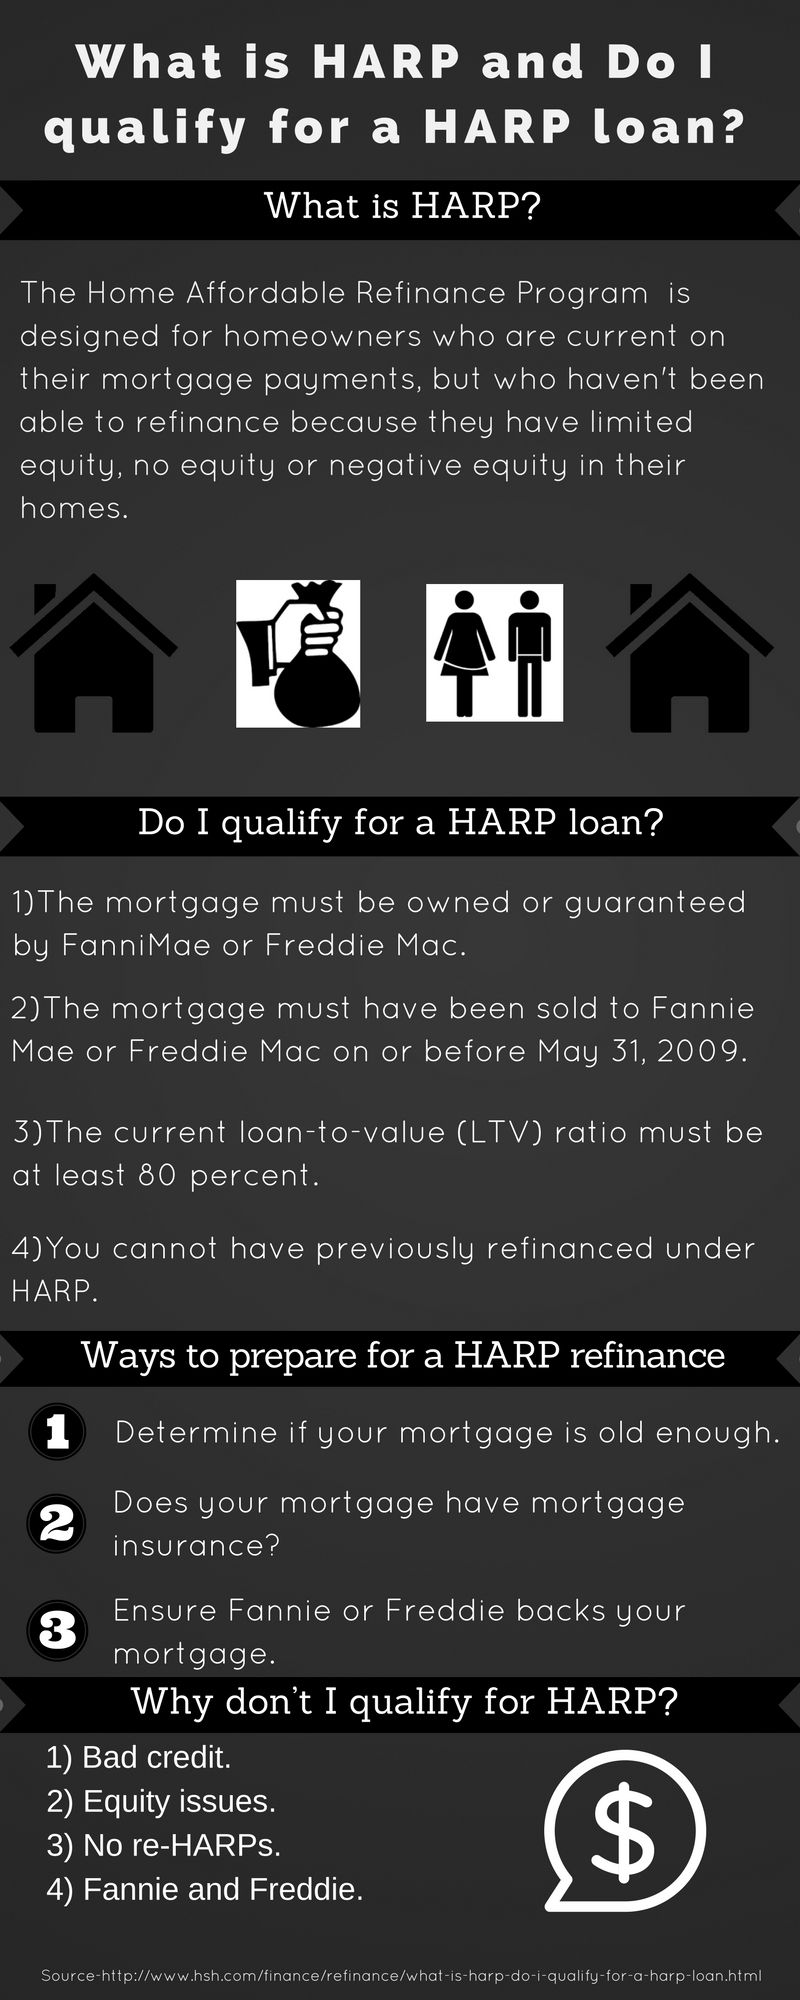 What is HARP and do I qualify for a HARP loan?   Refinancing